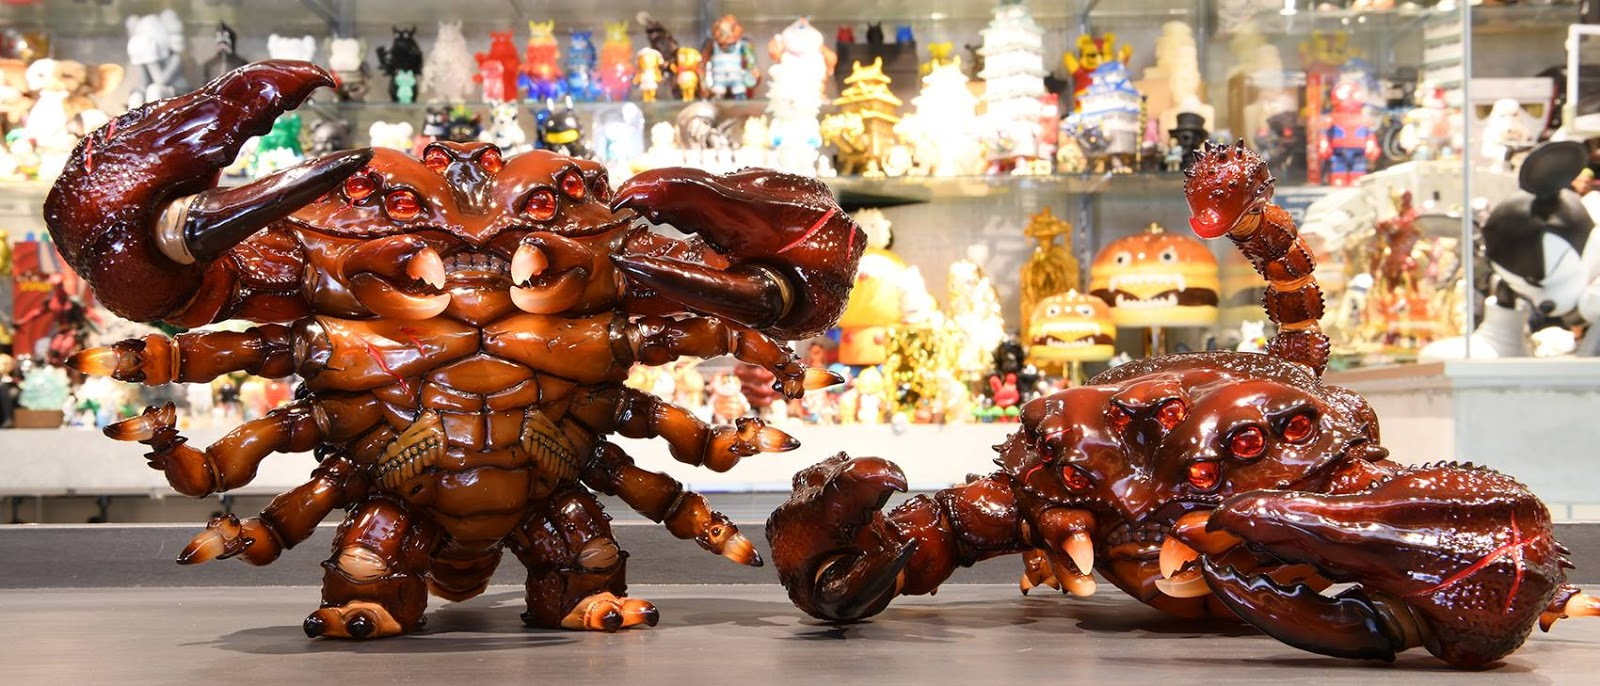 """Introducing the """"Red Claw Emperor"""" Edition Scorpion Kaiju from JUBI ..."""